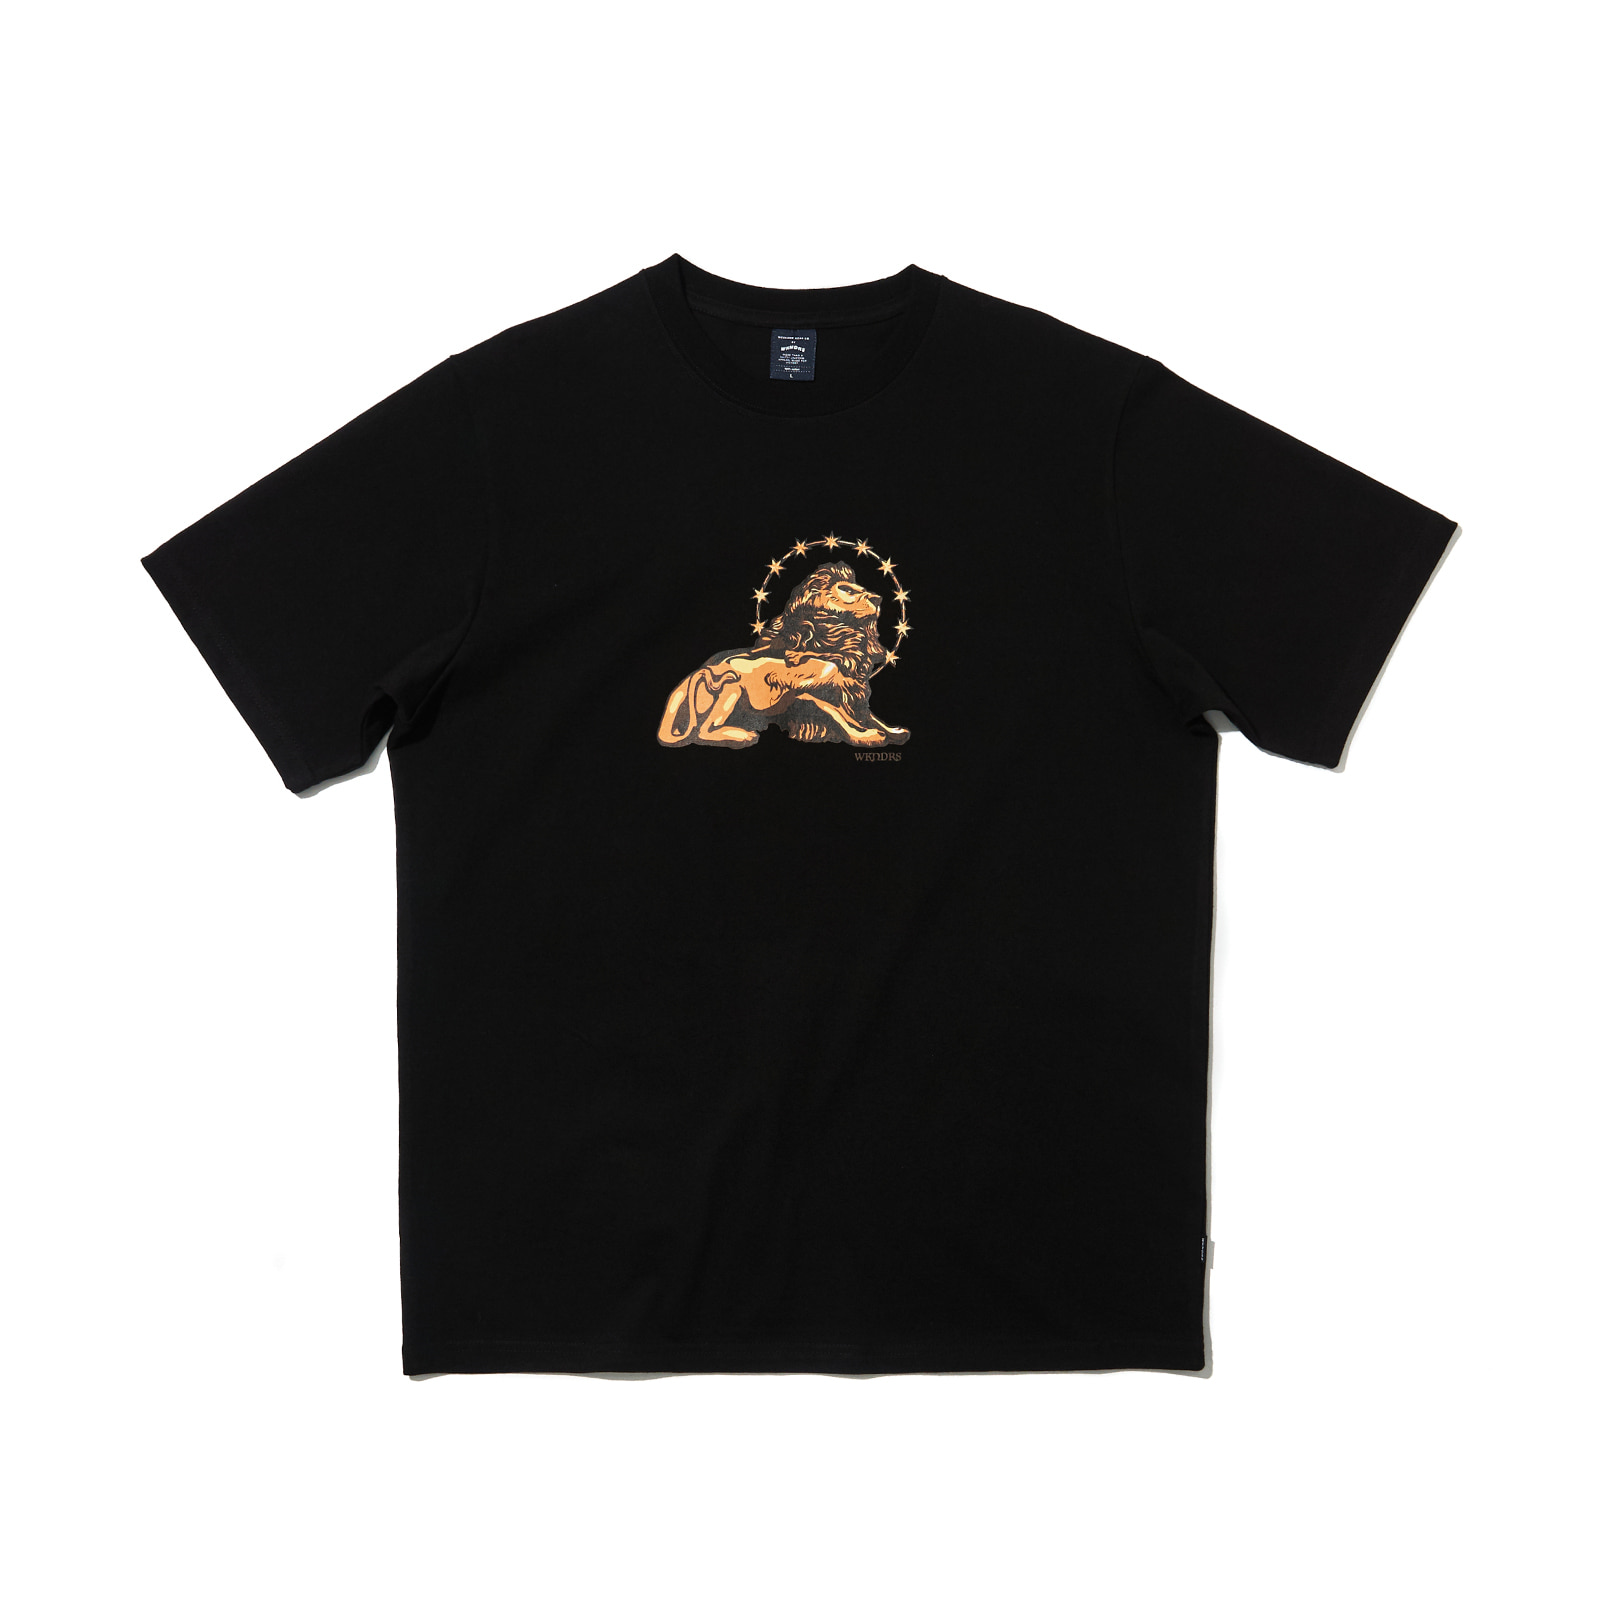 KING SS T-SHIRT (BLACK)